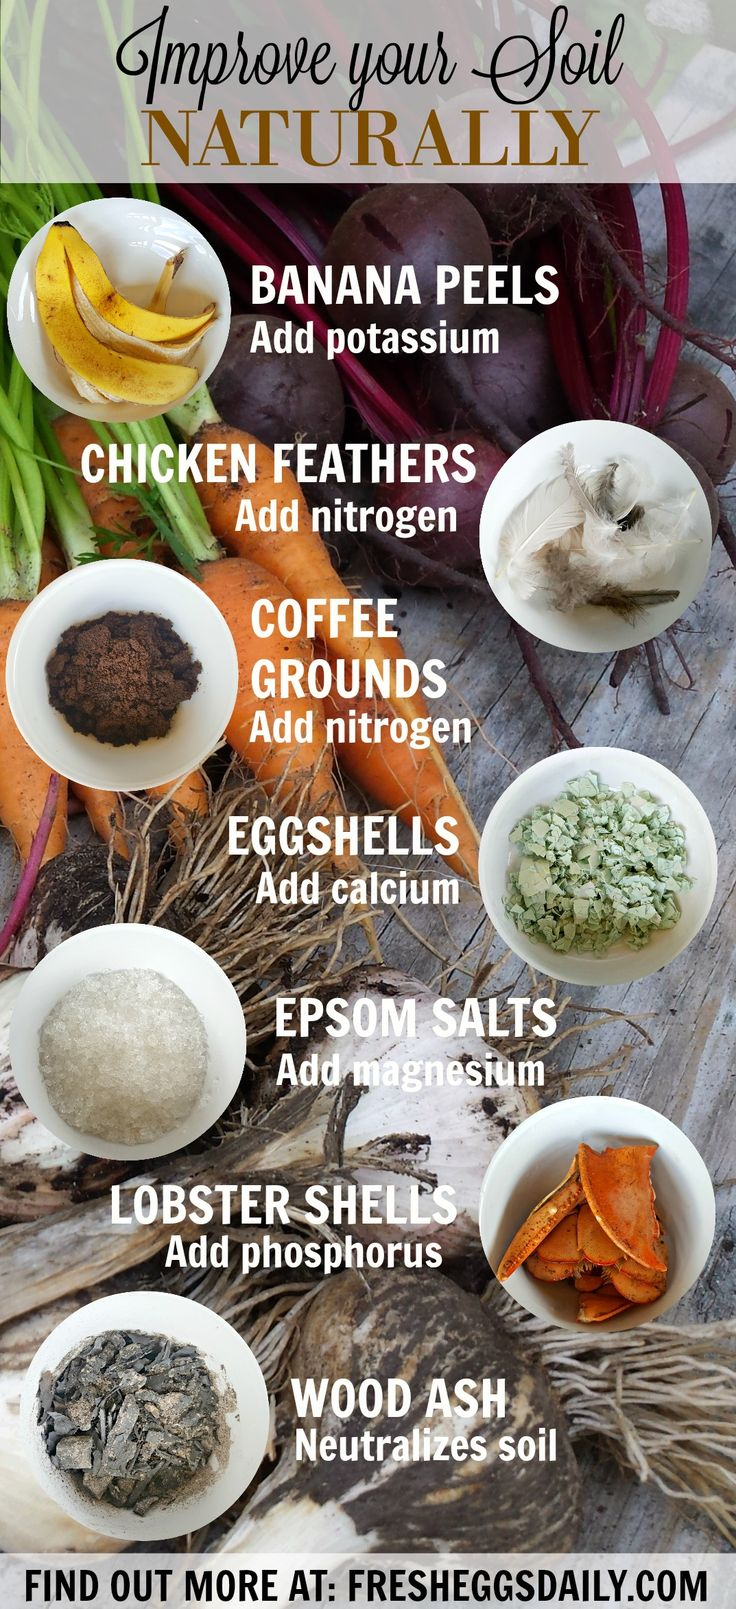 Use Some Scraps From Your Kitchen To Amend And Improve Your Garden Soil  Naturally. Inexpensive And Easy   Eggshells, Banana Peels, Epsom Salts, ...